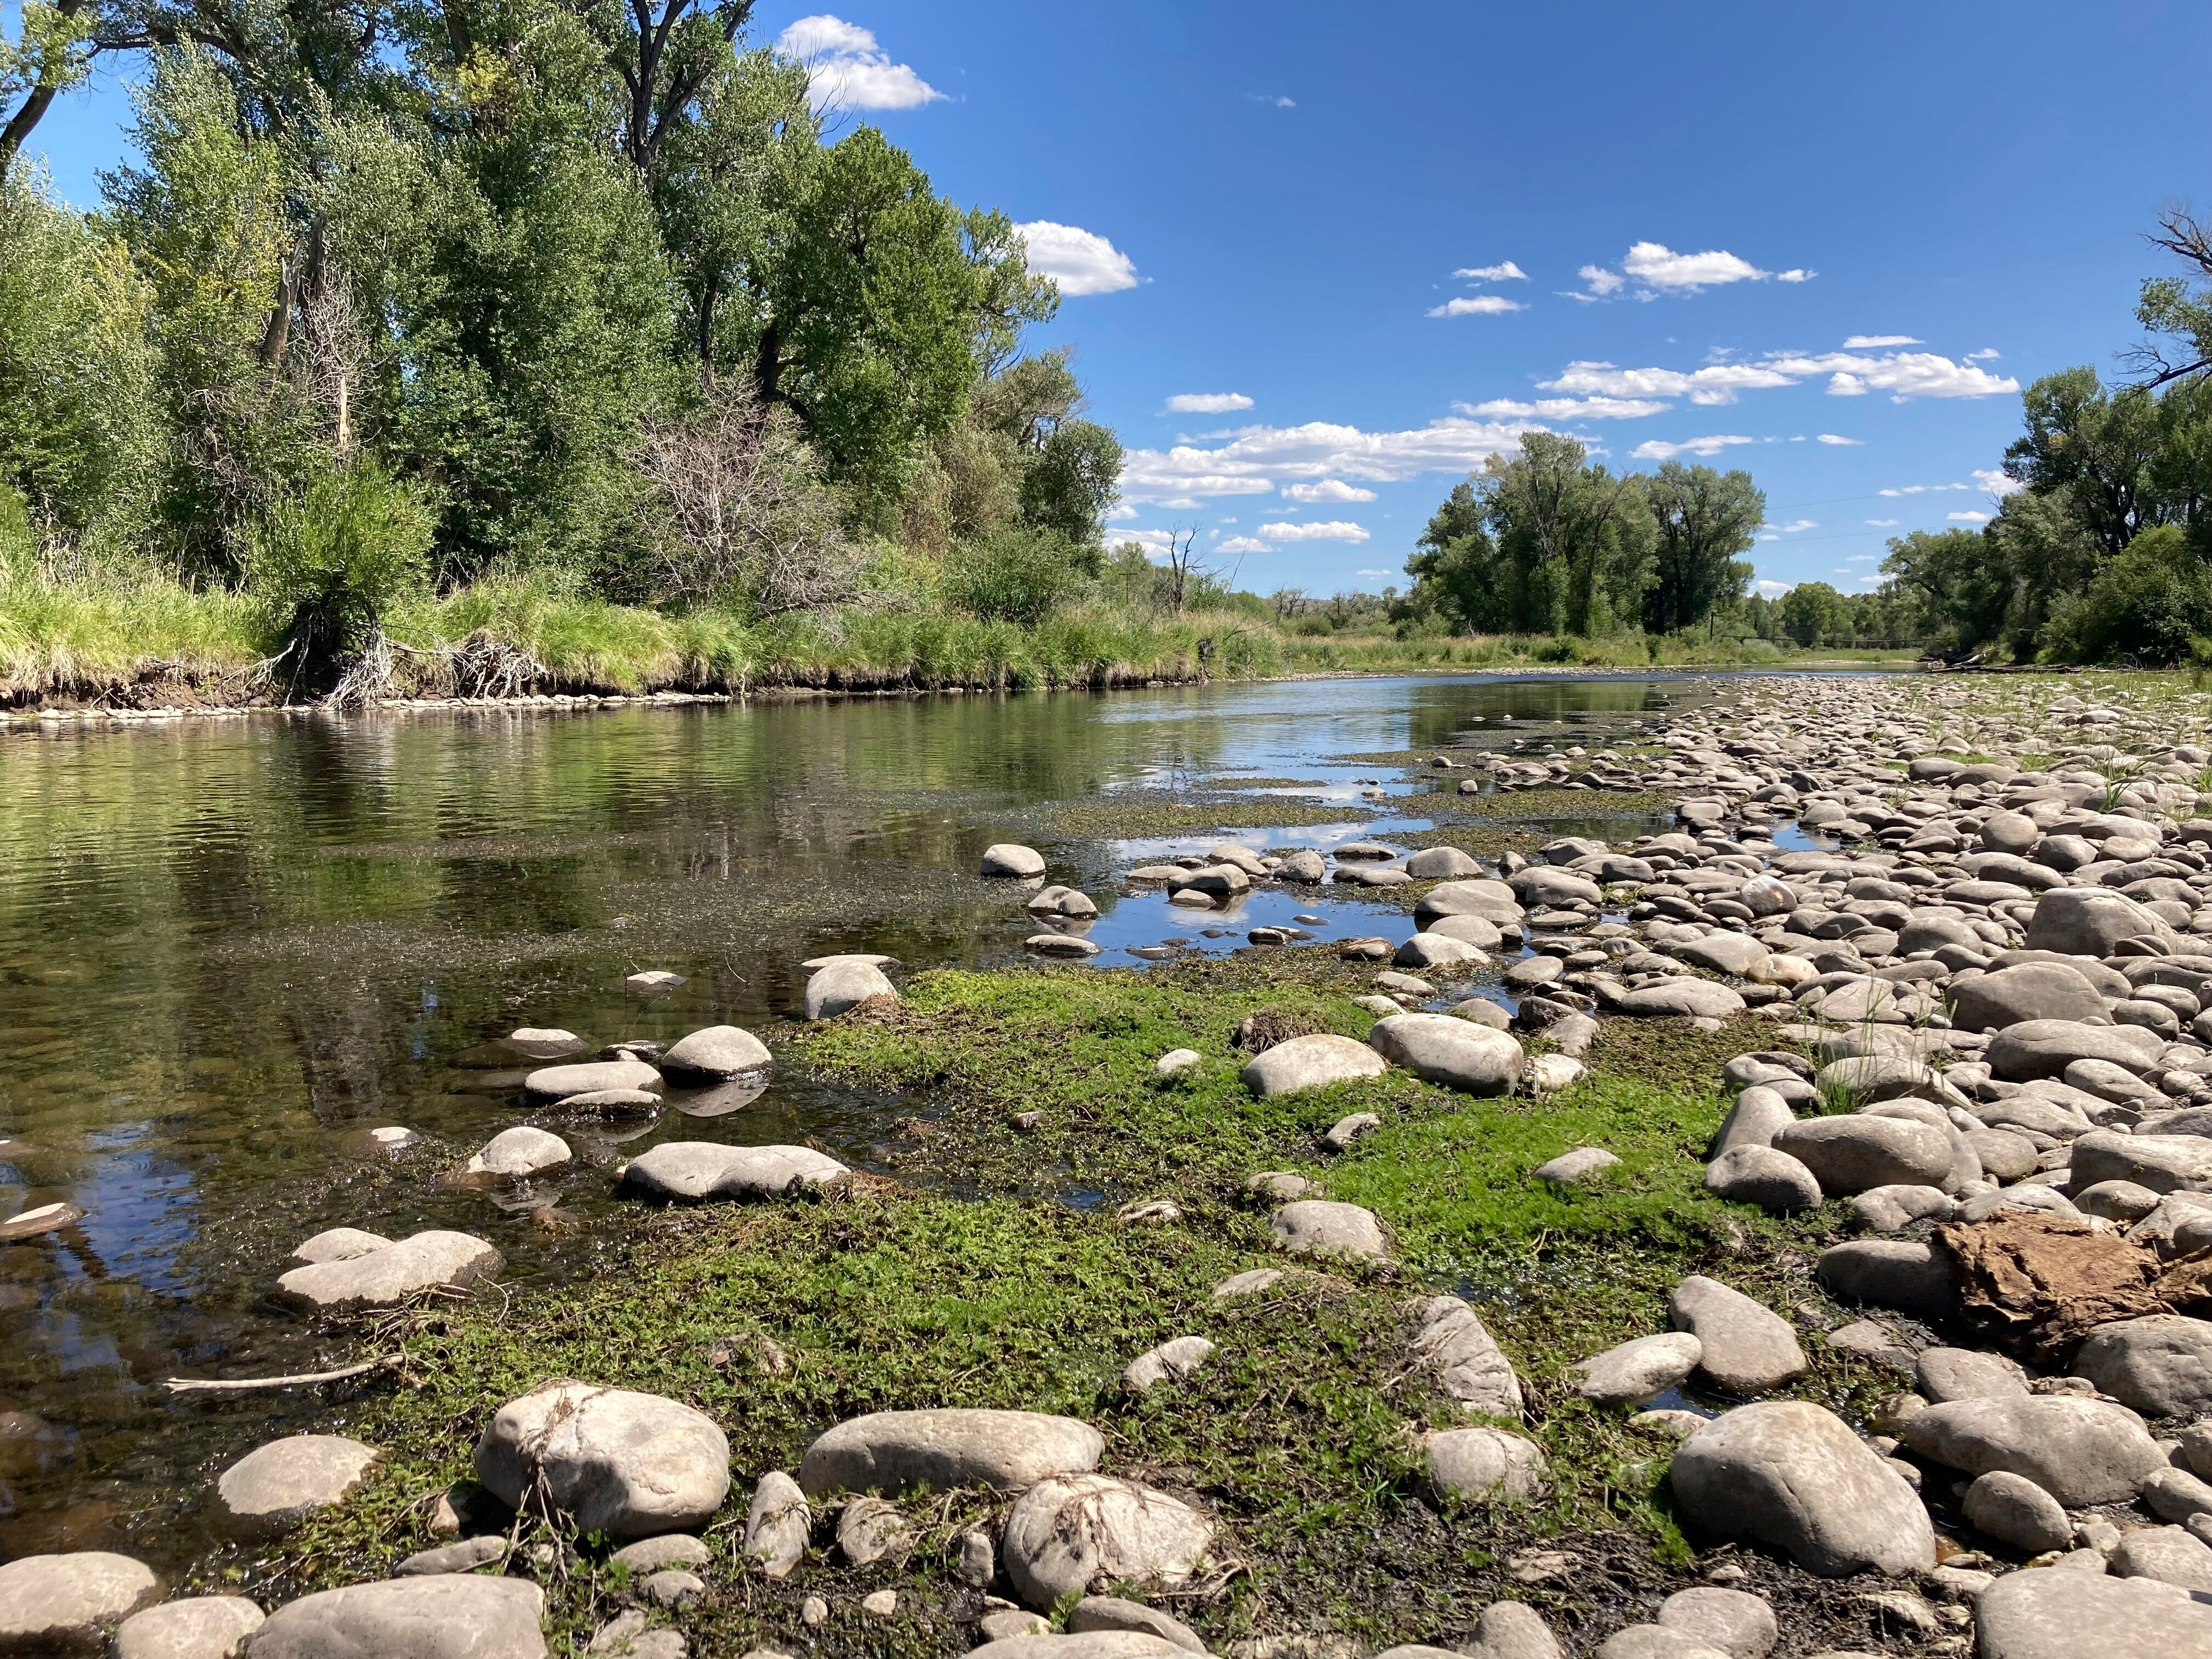 Exposed rocks and aquatic plants are seen alongside the North Platte River at Treasure Island in southern Wyoming, on Tuesday